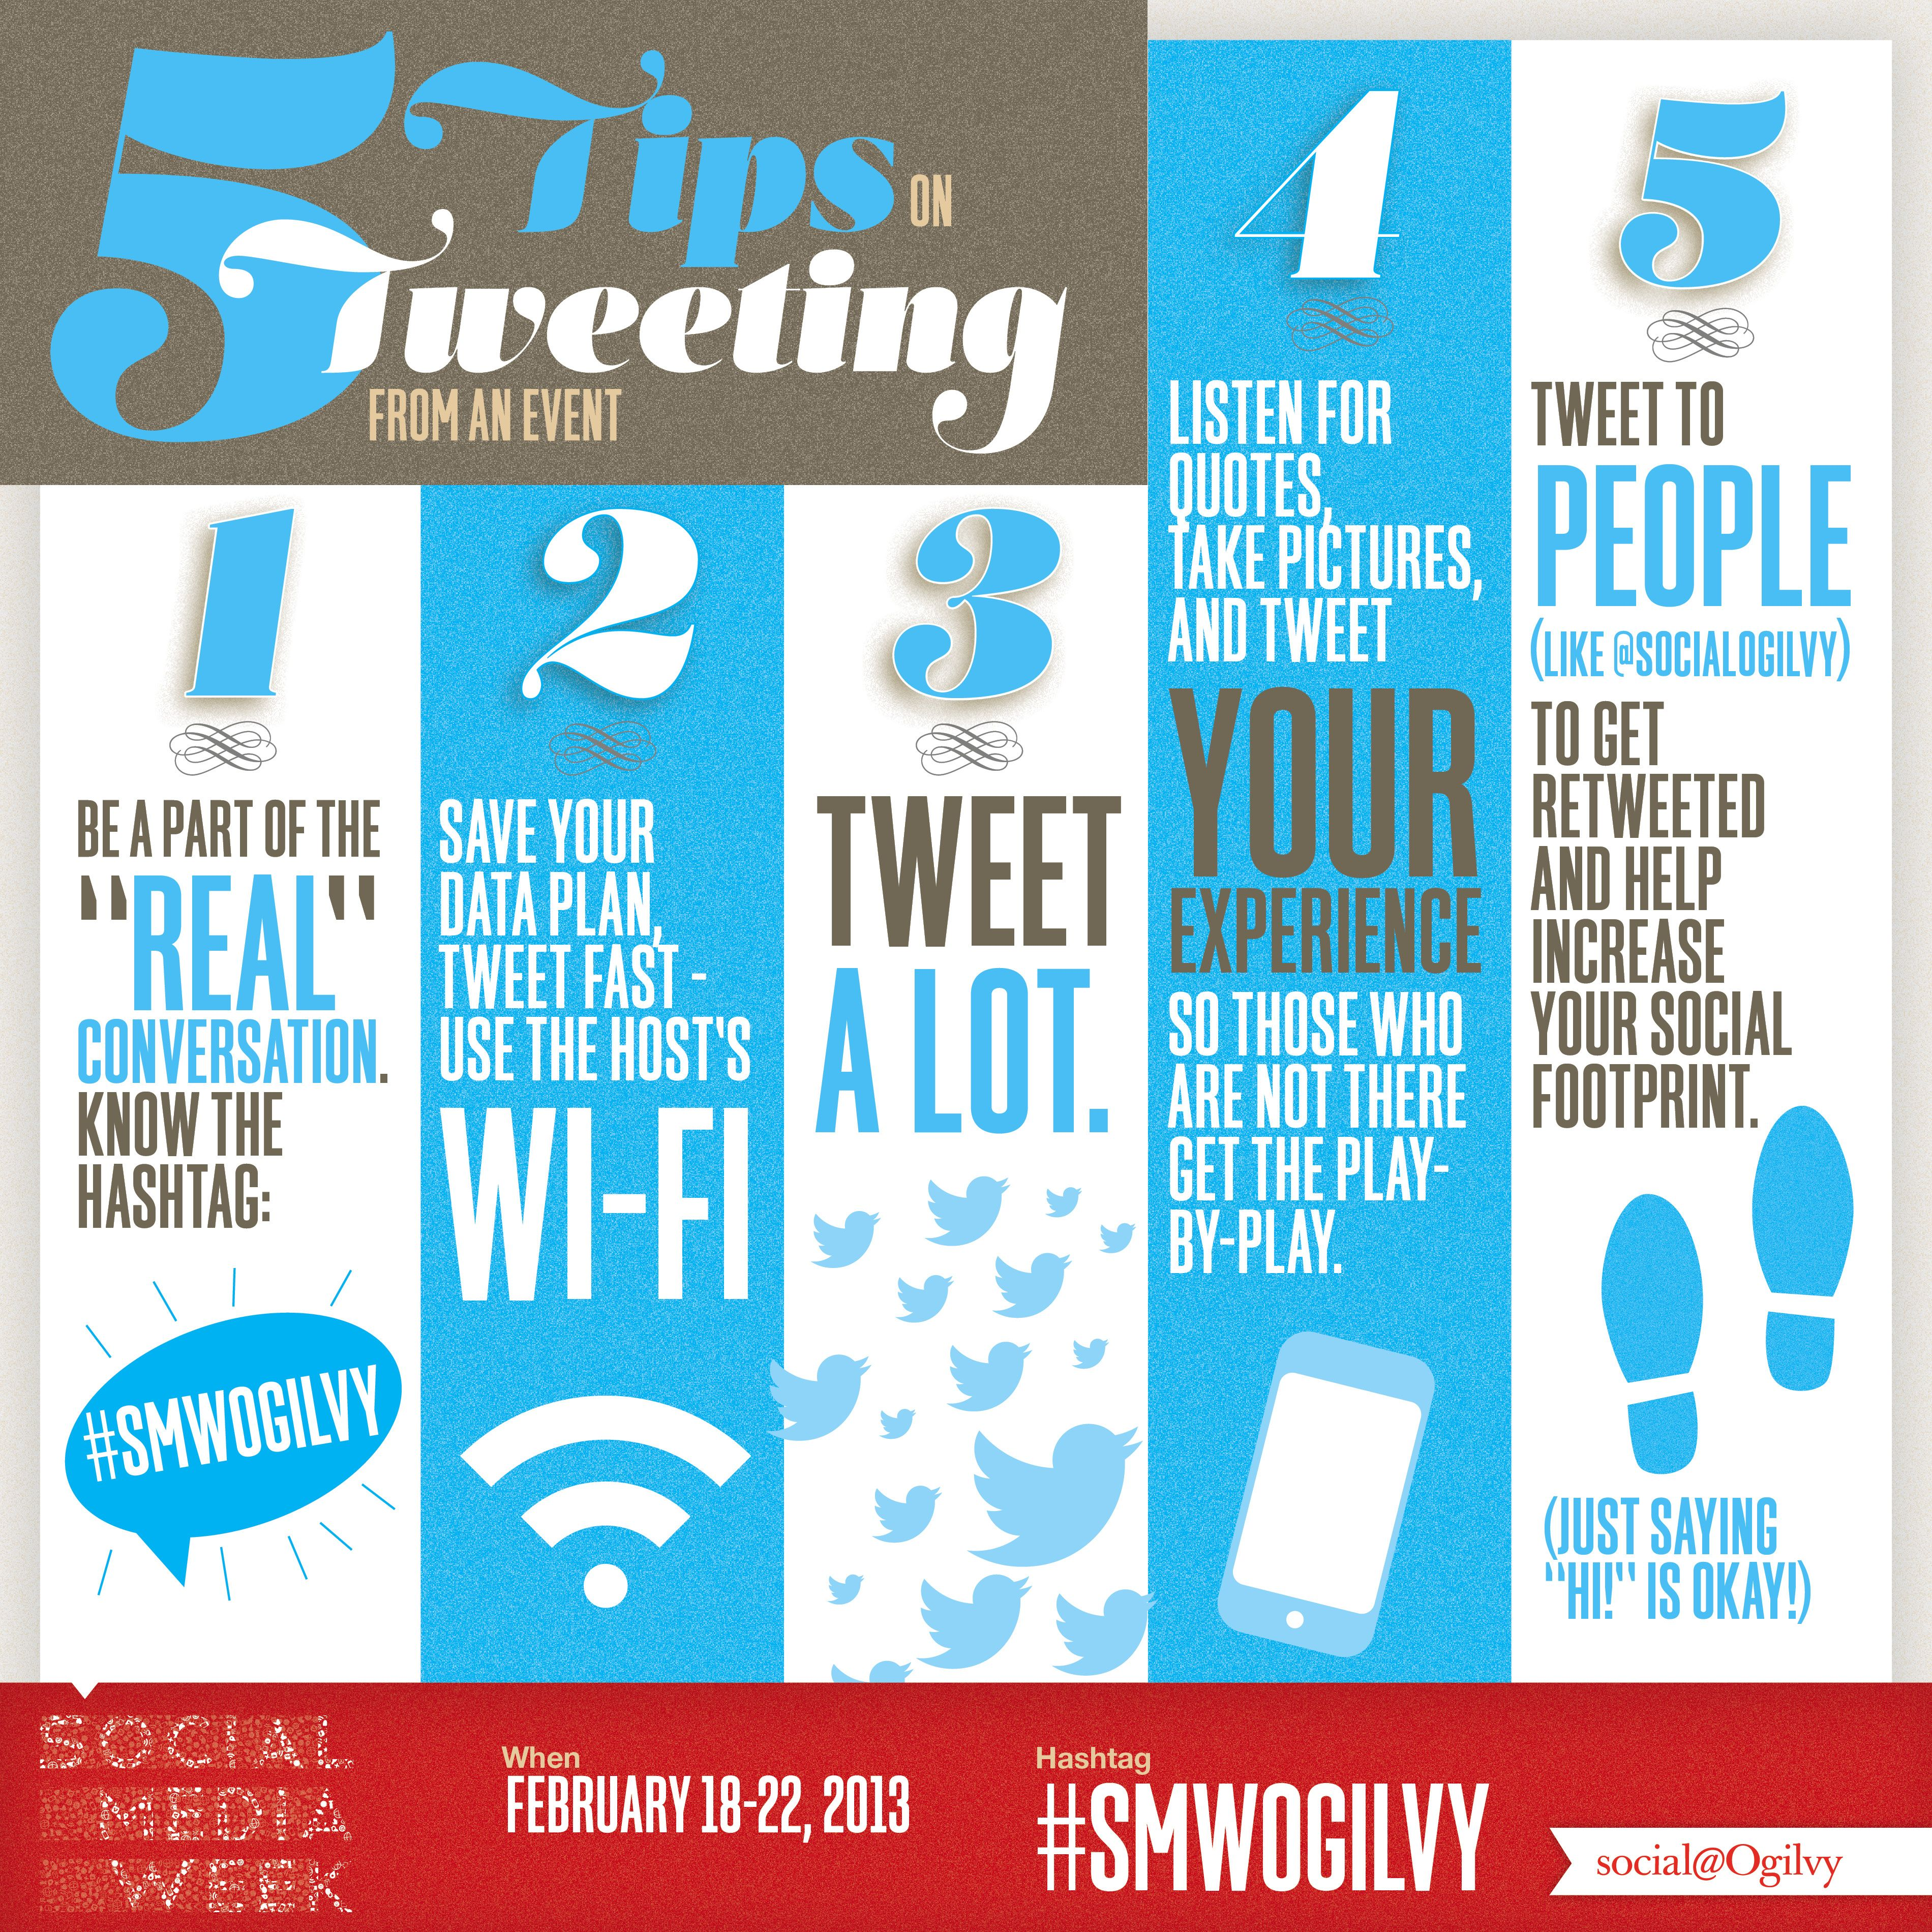 5 Quick Tips On Tweeting From An Event Via Social Ogilvy Social